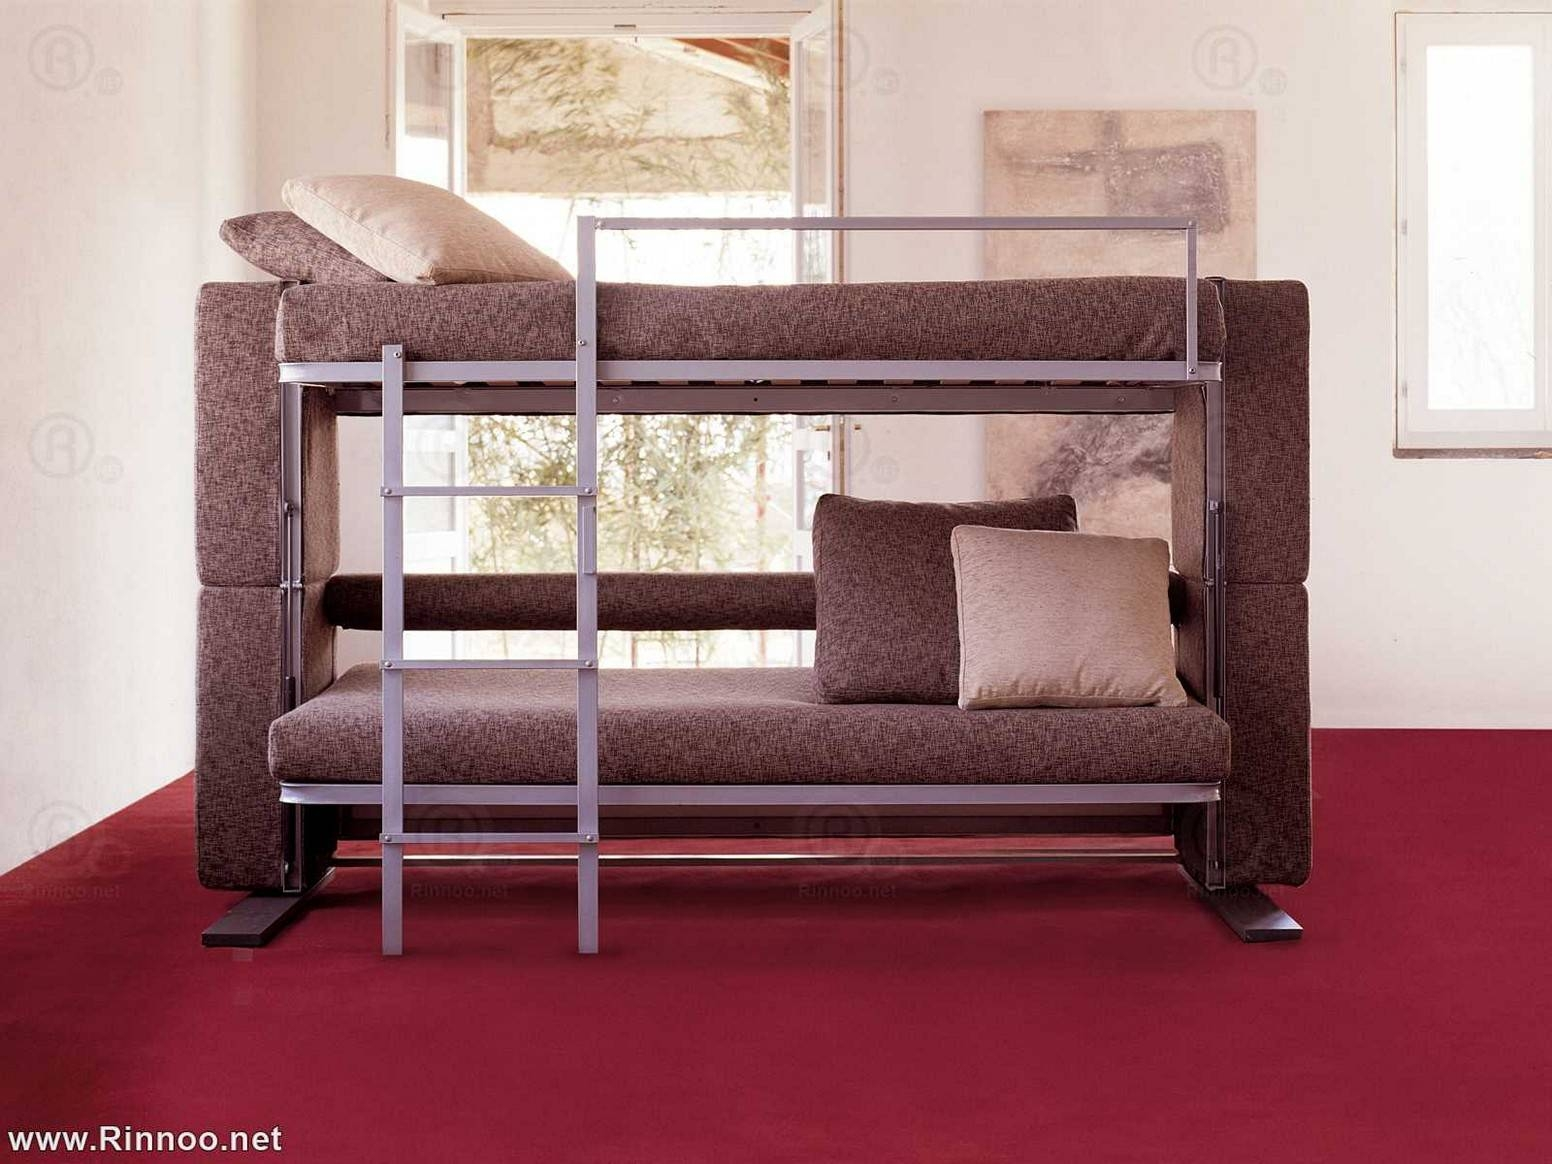 Classic Bunk Sofa Bed Australia In Bunk Bed So #11099  | Bed intended for Sofa Bunk Beds (Image 6 of 30)